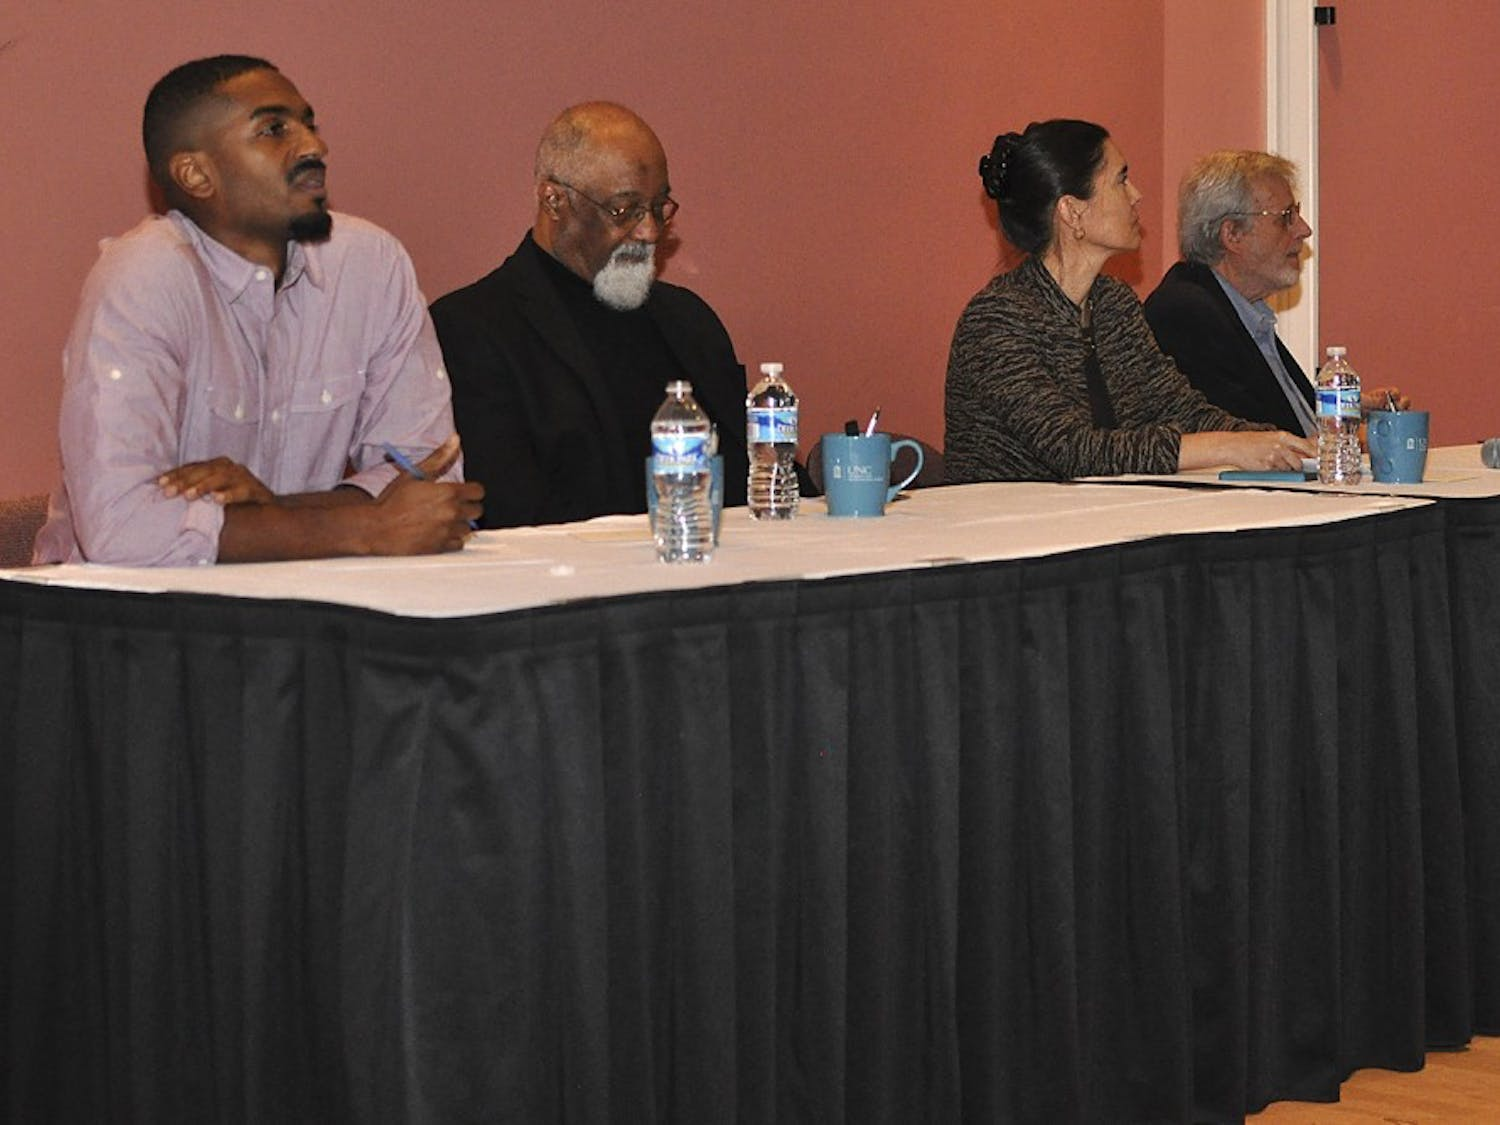 From left, Ori Burton, Irving Joyner, Anita Earls and Al McSurely participated in Thursday night's 50 Years After the Dream: Race and the Justice System Panel.